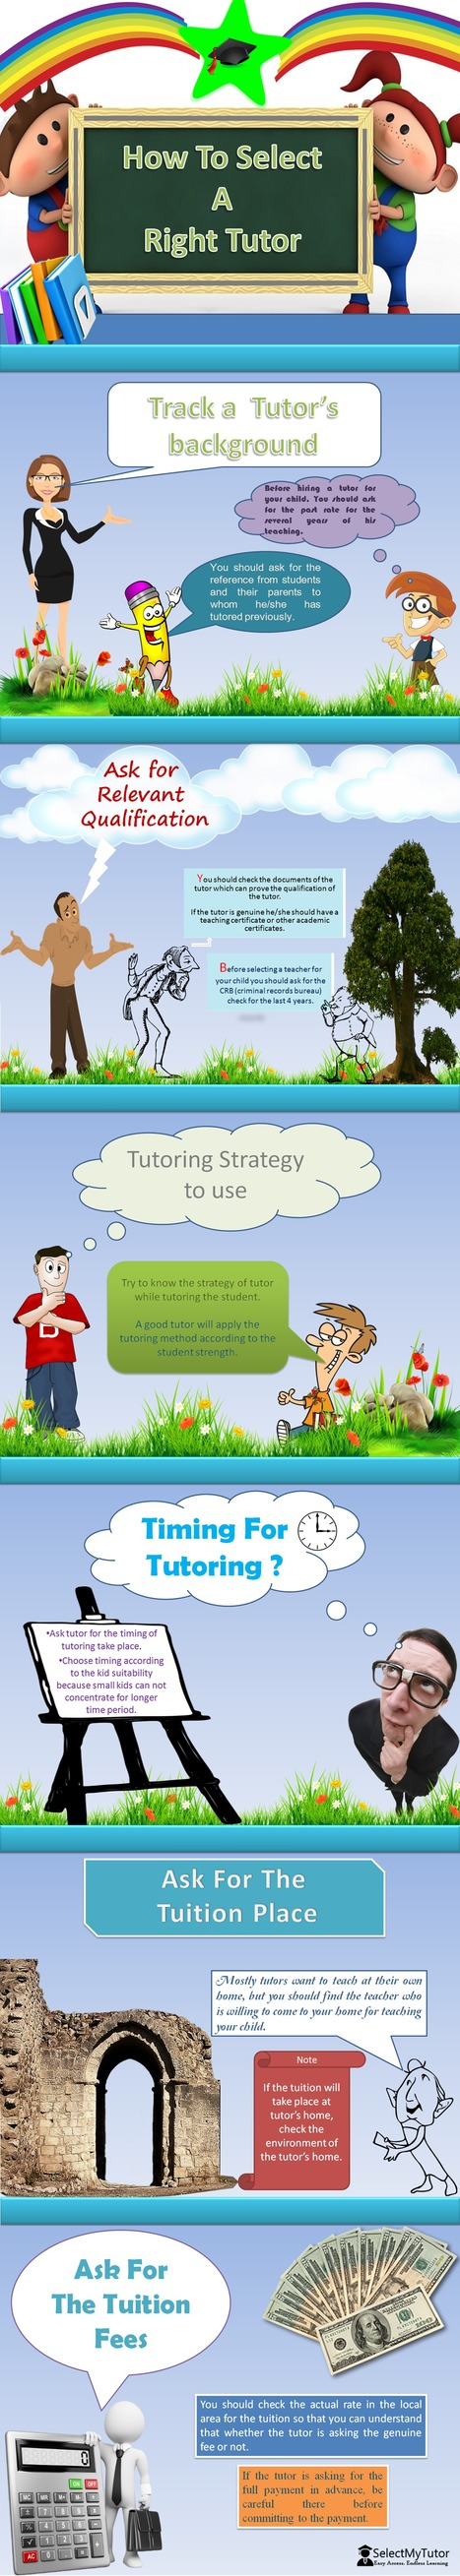 How To Select A Right Tutor | SelectMyTutor | Scoop.it